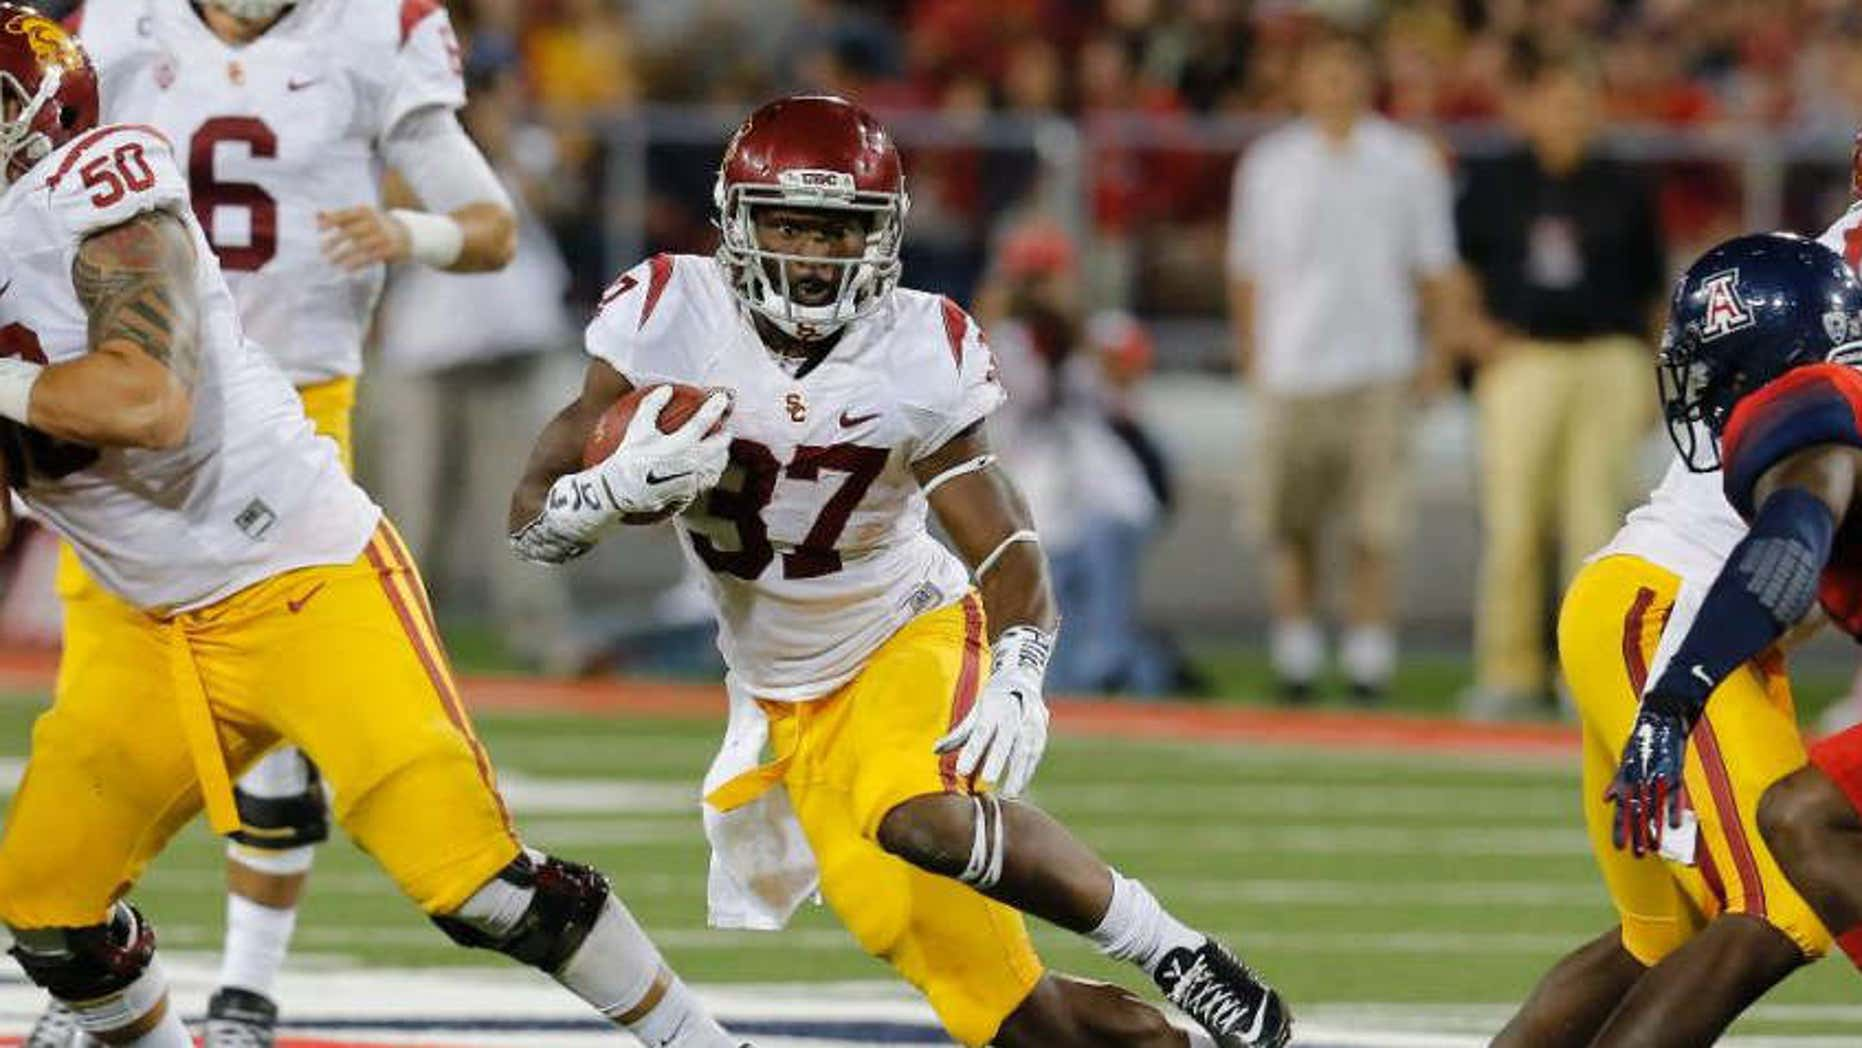 Oct. 11, 2014: Southern California running back Javorius Allen (37) runs for a firstdown against Arizona during the second half of an NCAA college football game.